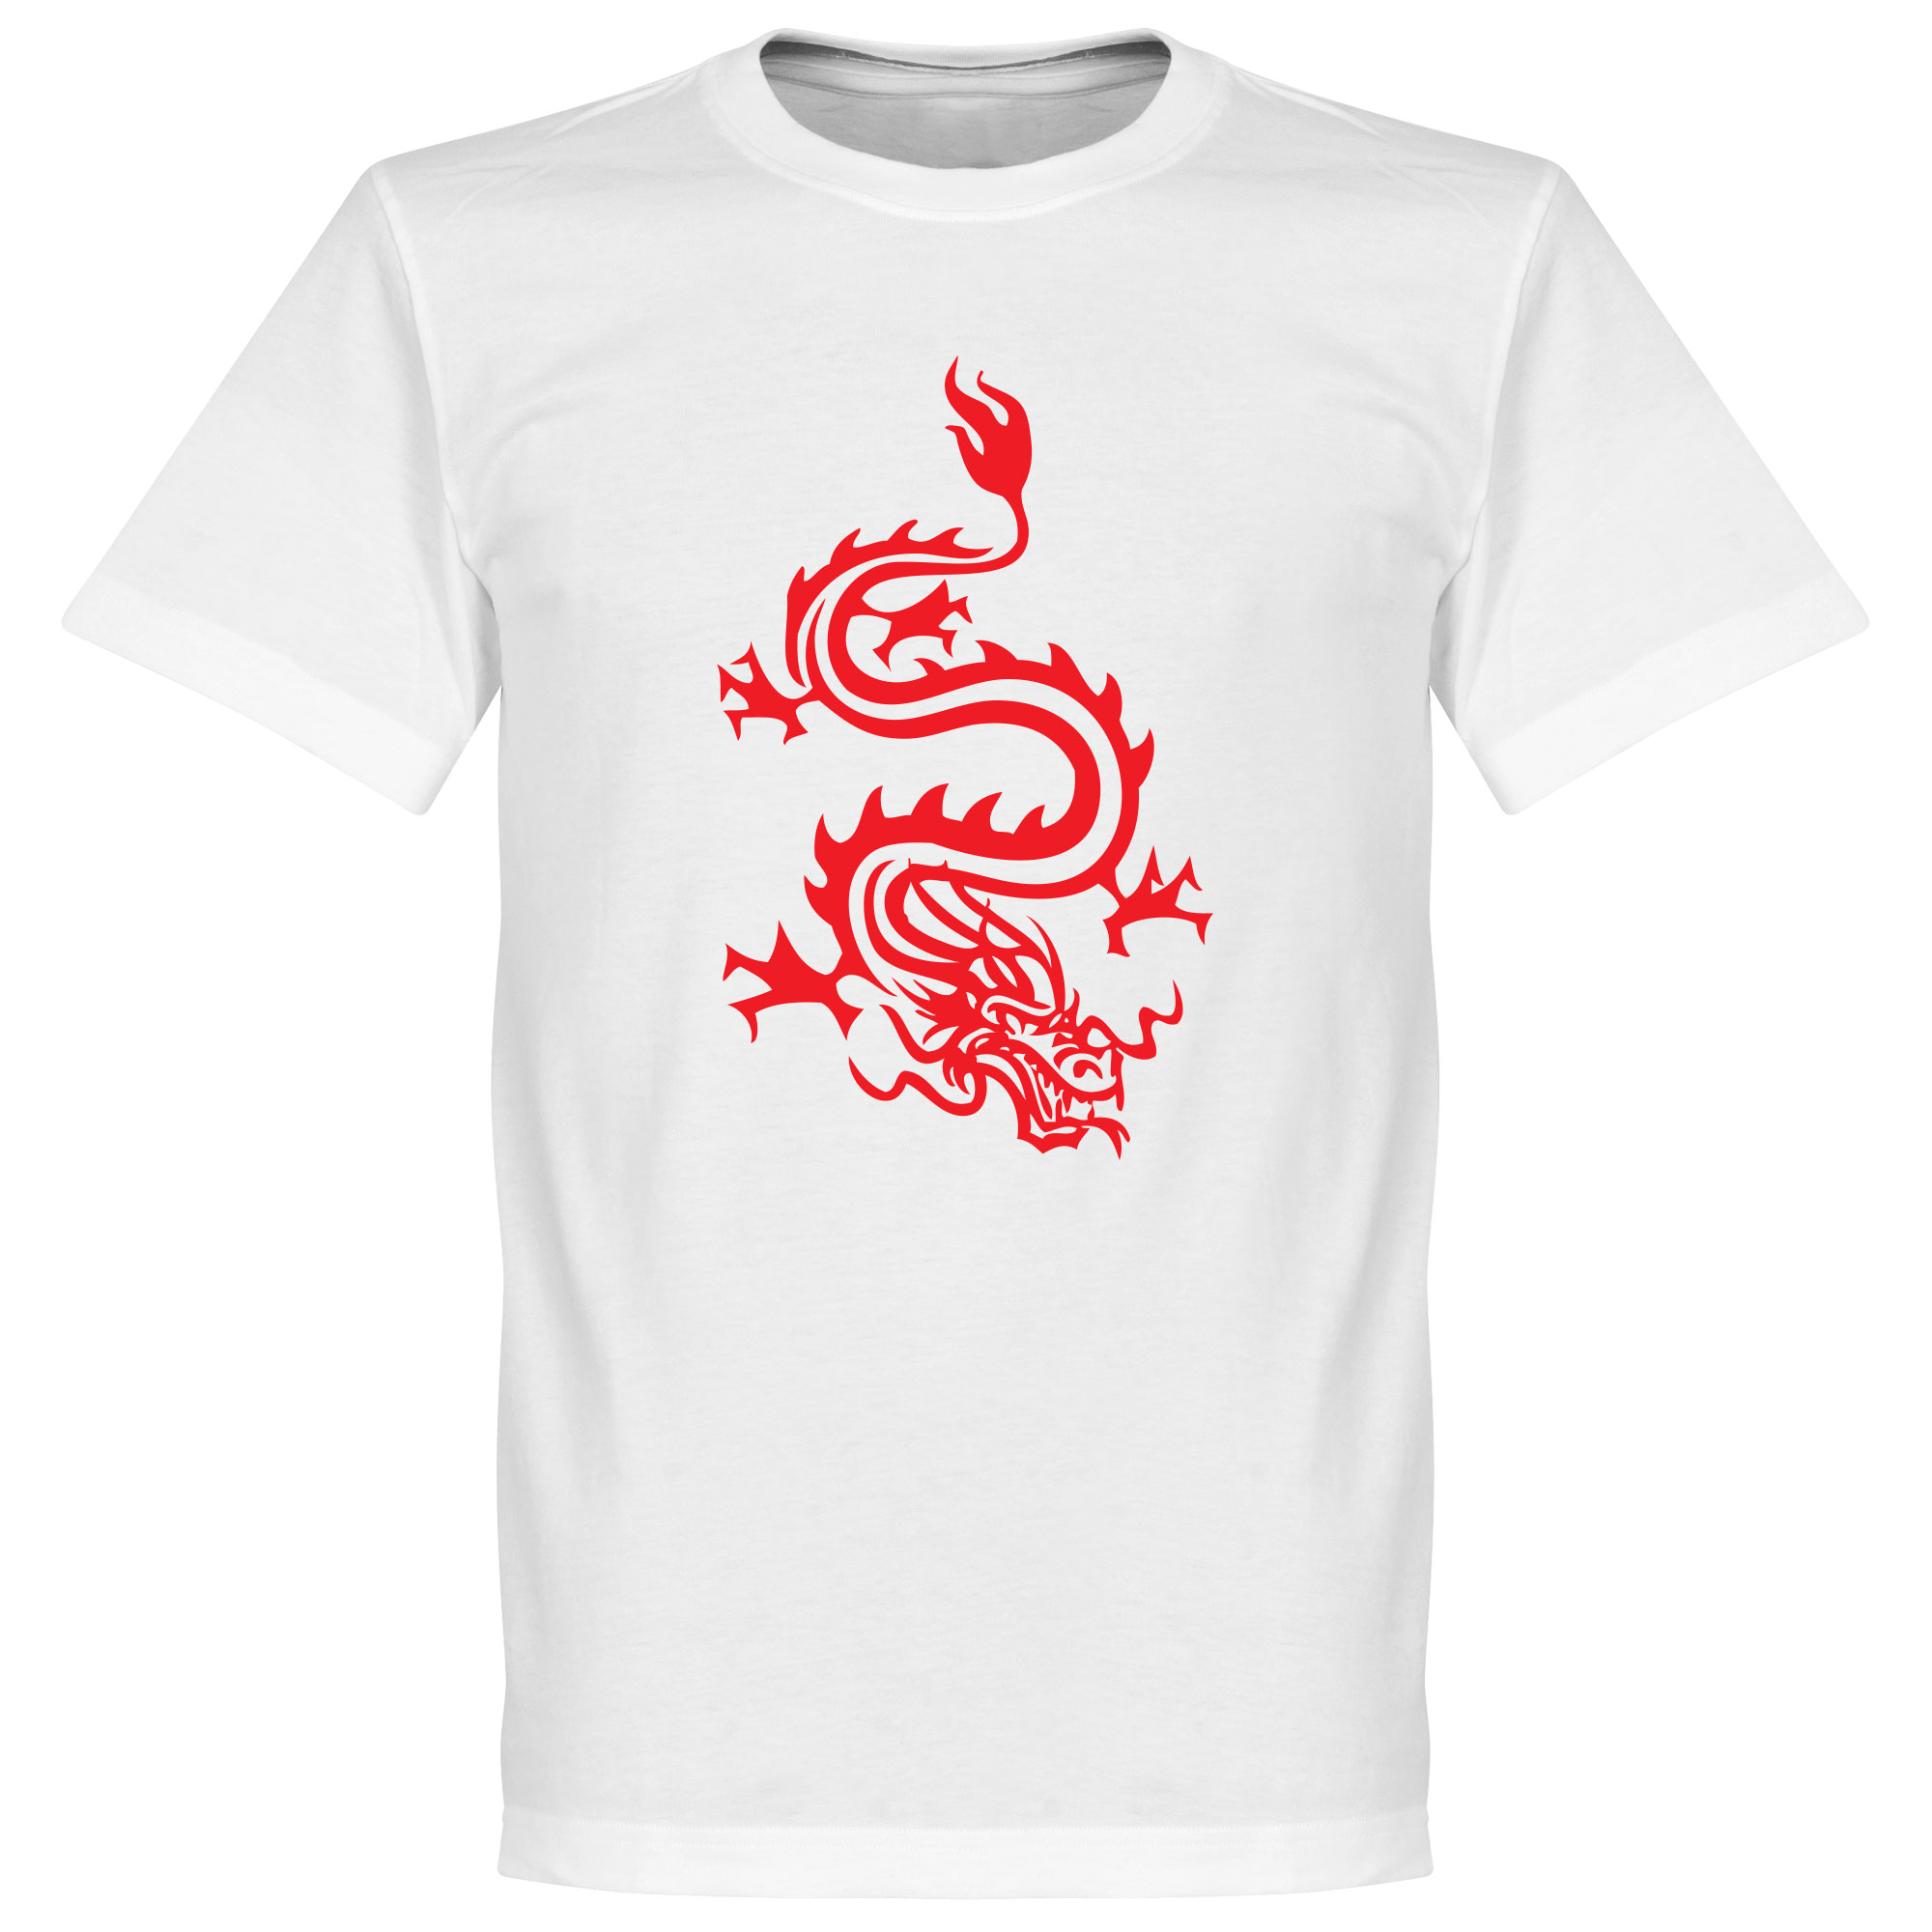 Dragon Logo Tee - White - XXXXXL